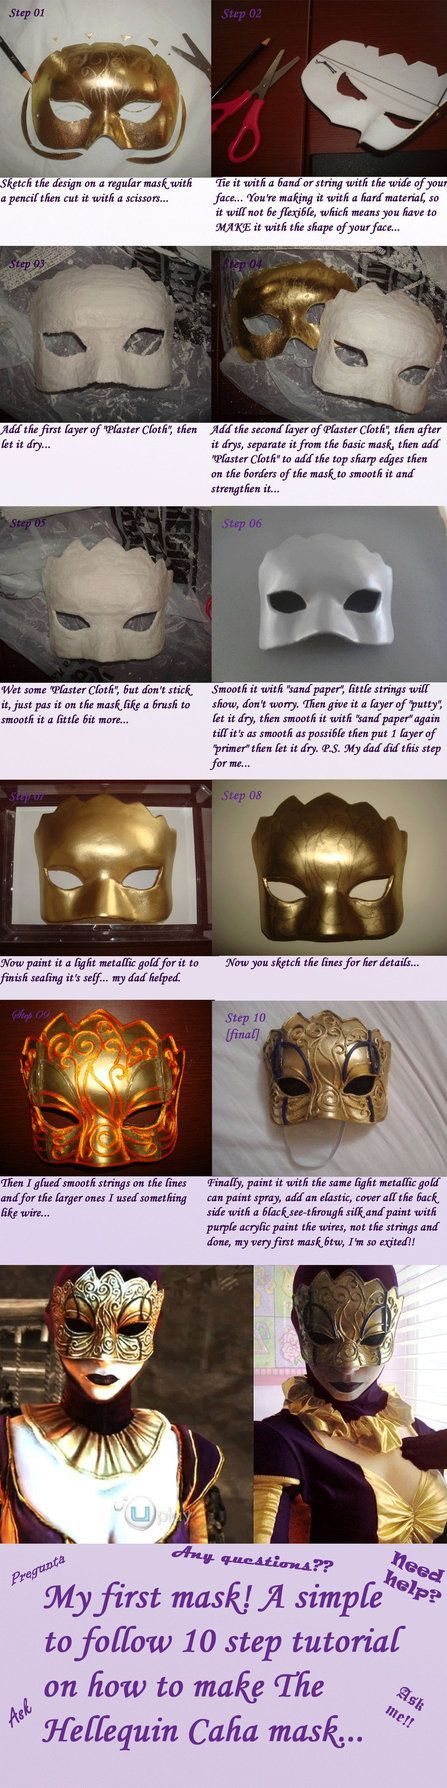 The Hellequin (Caha) mask tutorial by ~Josumi-kun on deviantART: